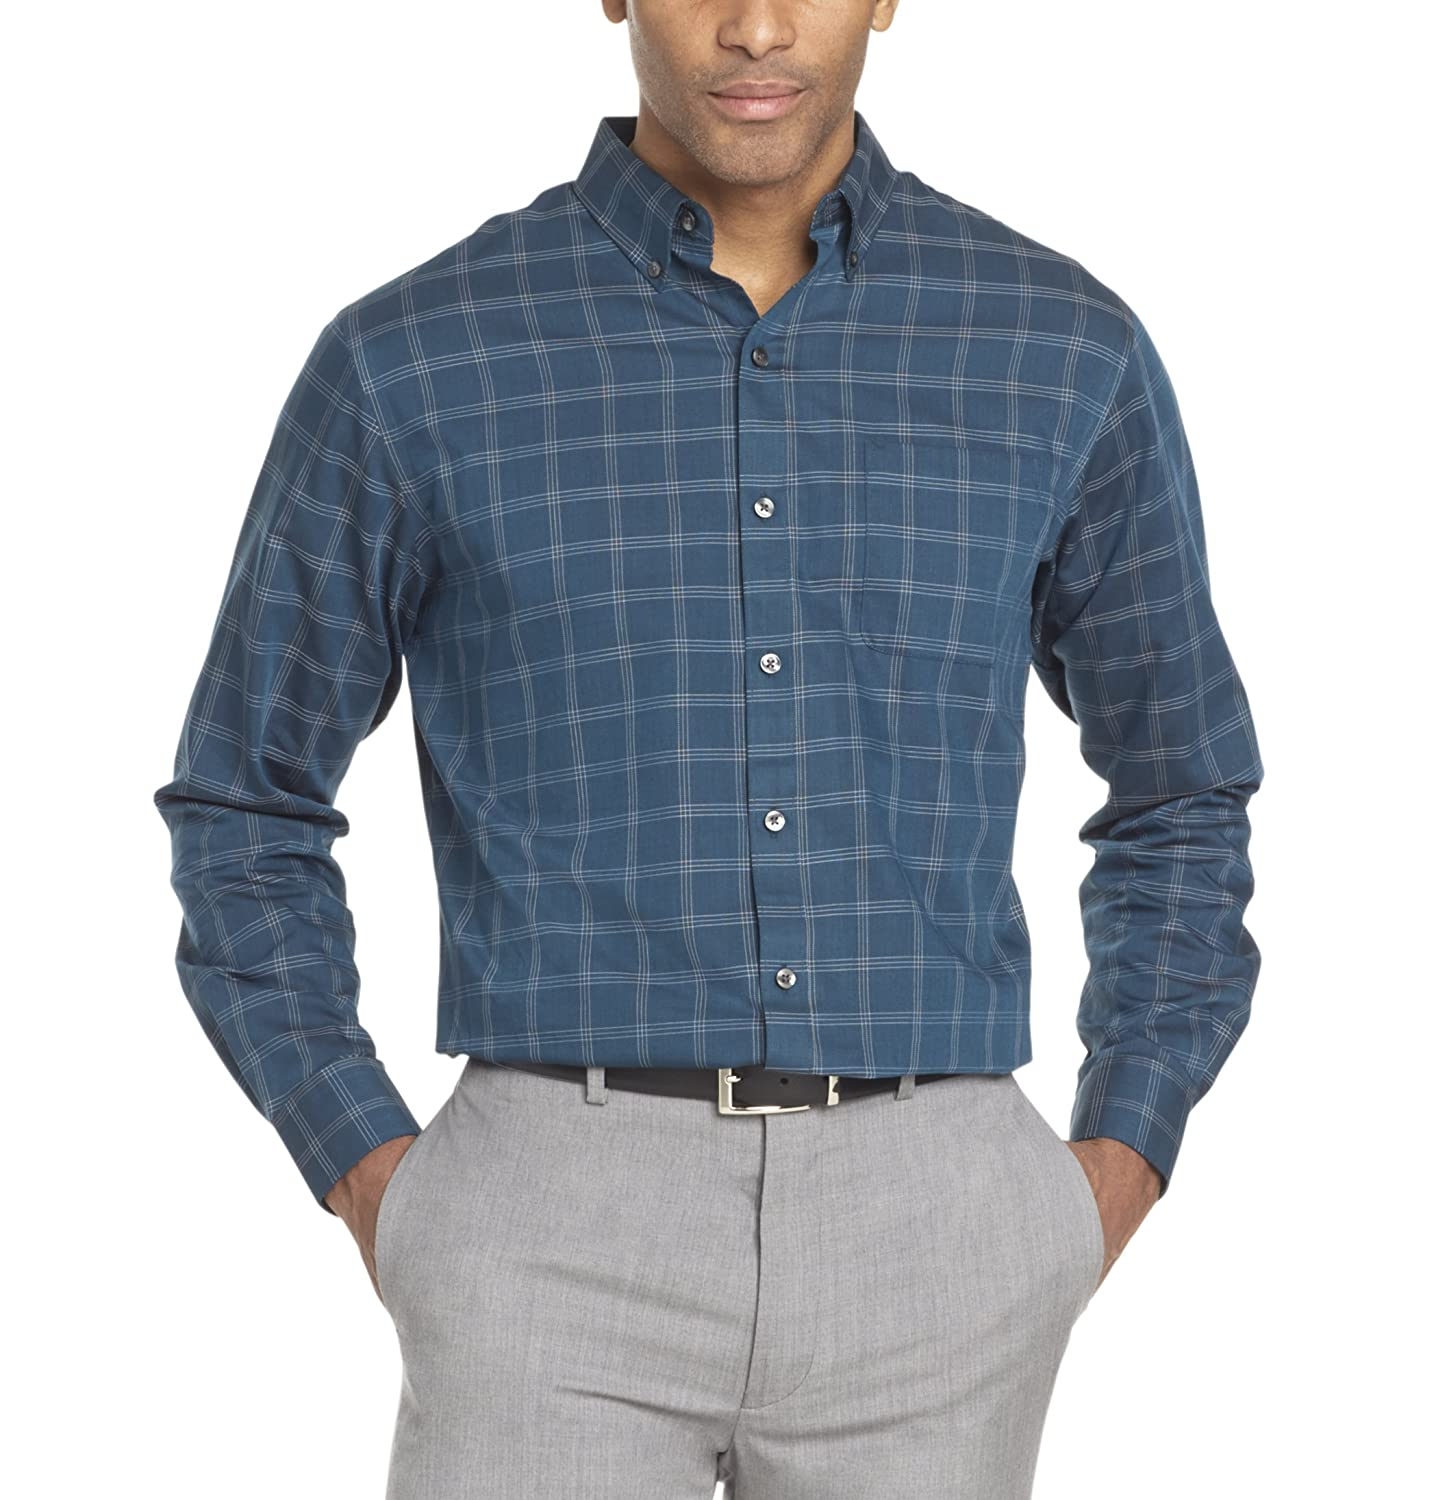 Van Heusen Men's Wrinkle Free Twill Long Sleeve Button Down Shirt 5025785